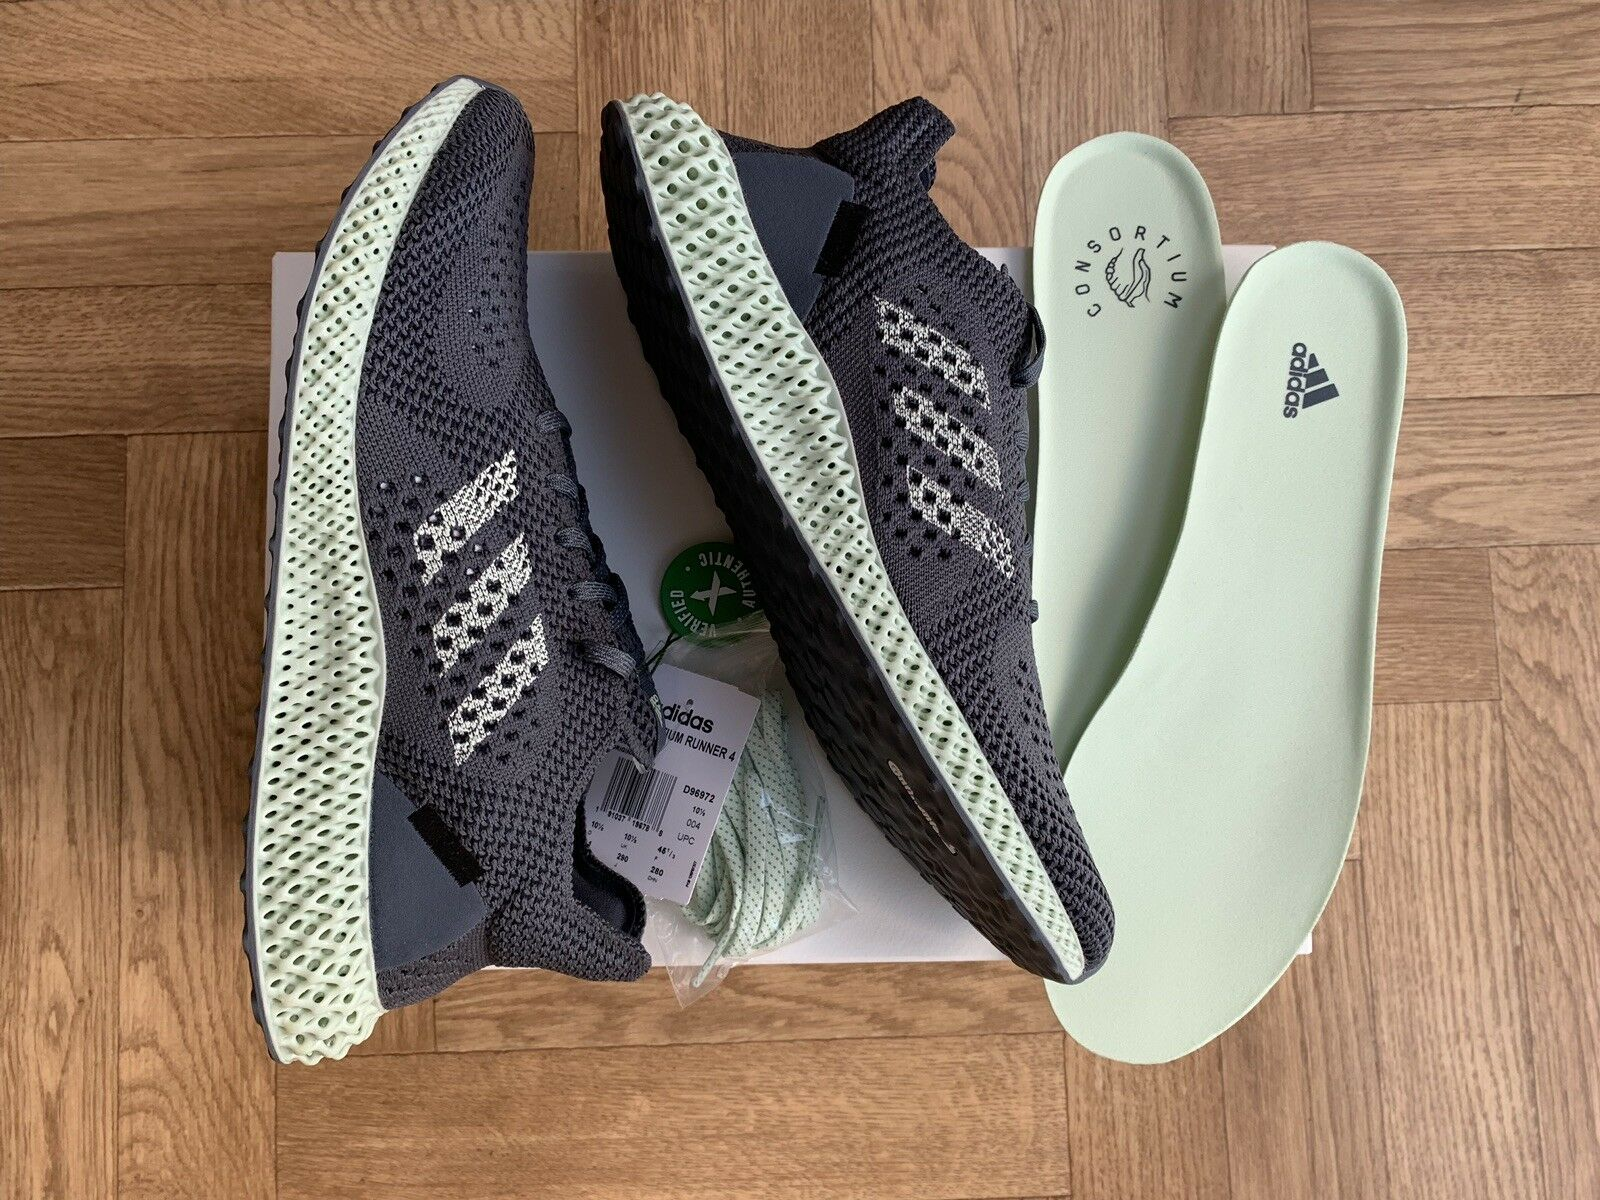 Adidas Futurecraft 4D Onix Aero Grey Size 10.5 Boxed New Rare Quality shoes